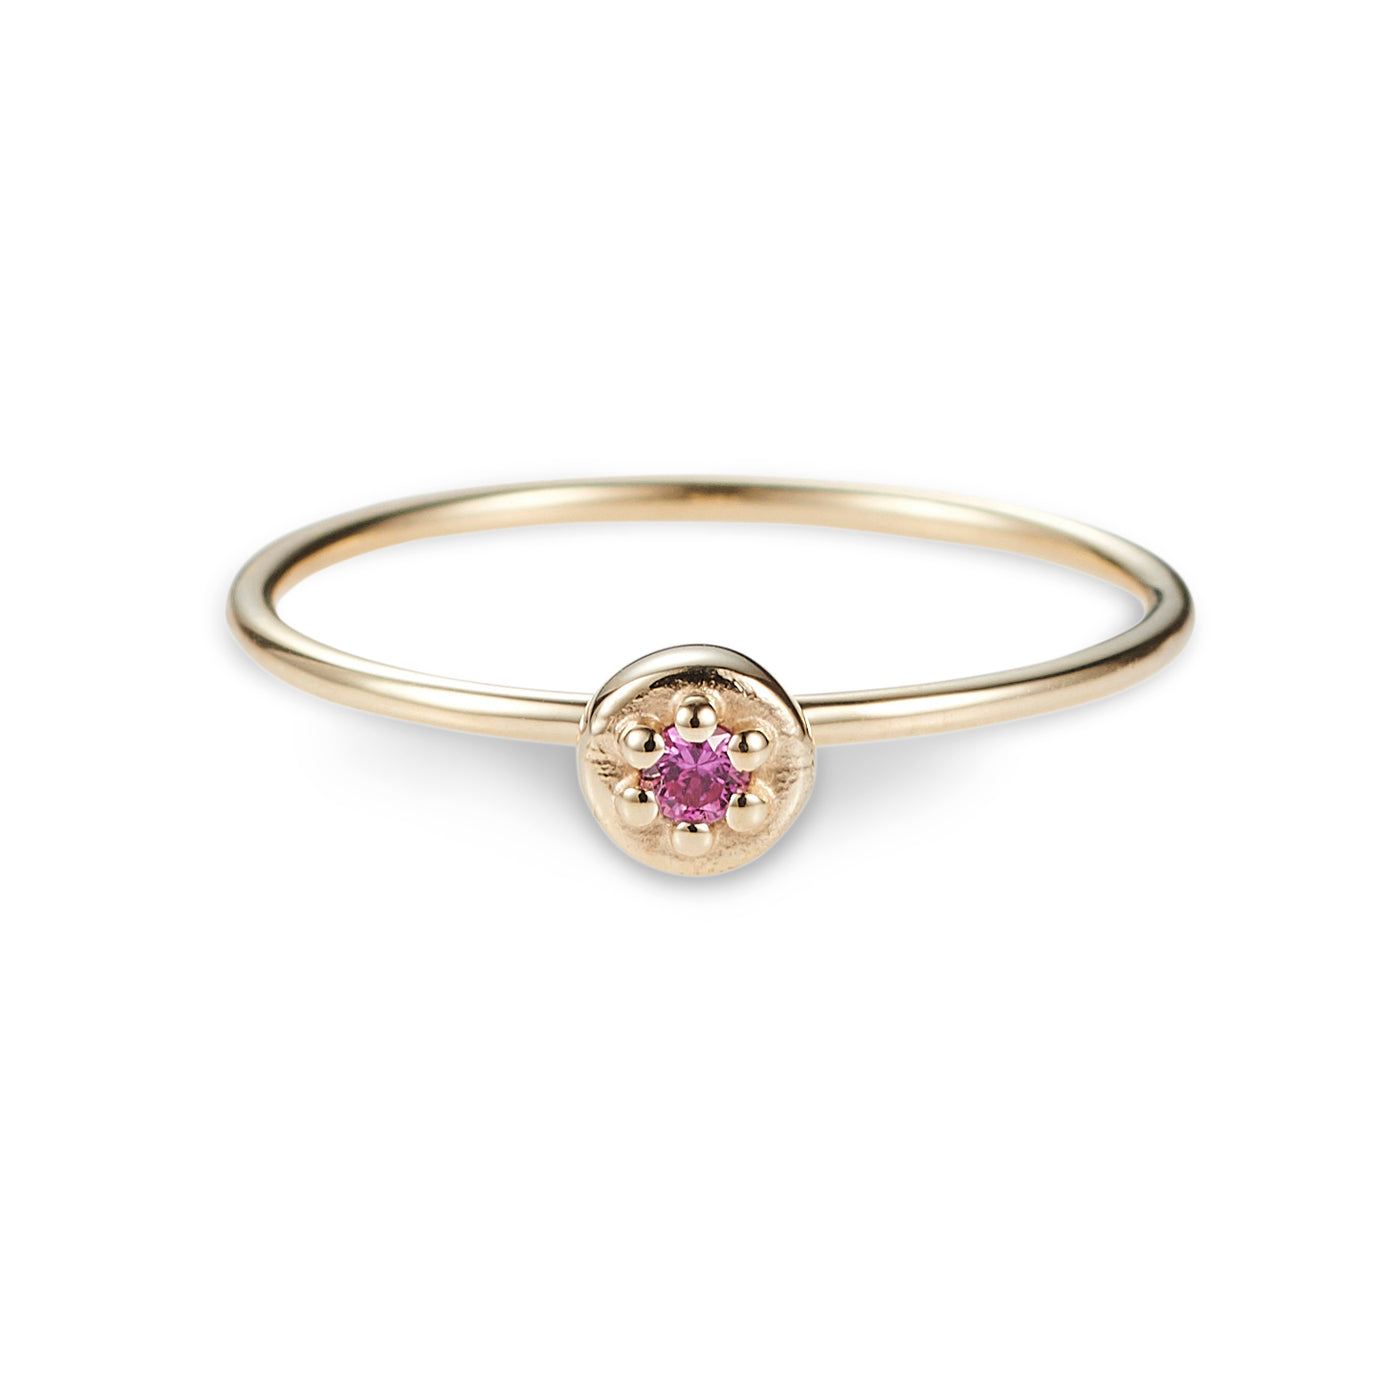 Luke Rose Jewellery gold pink sapphire ring